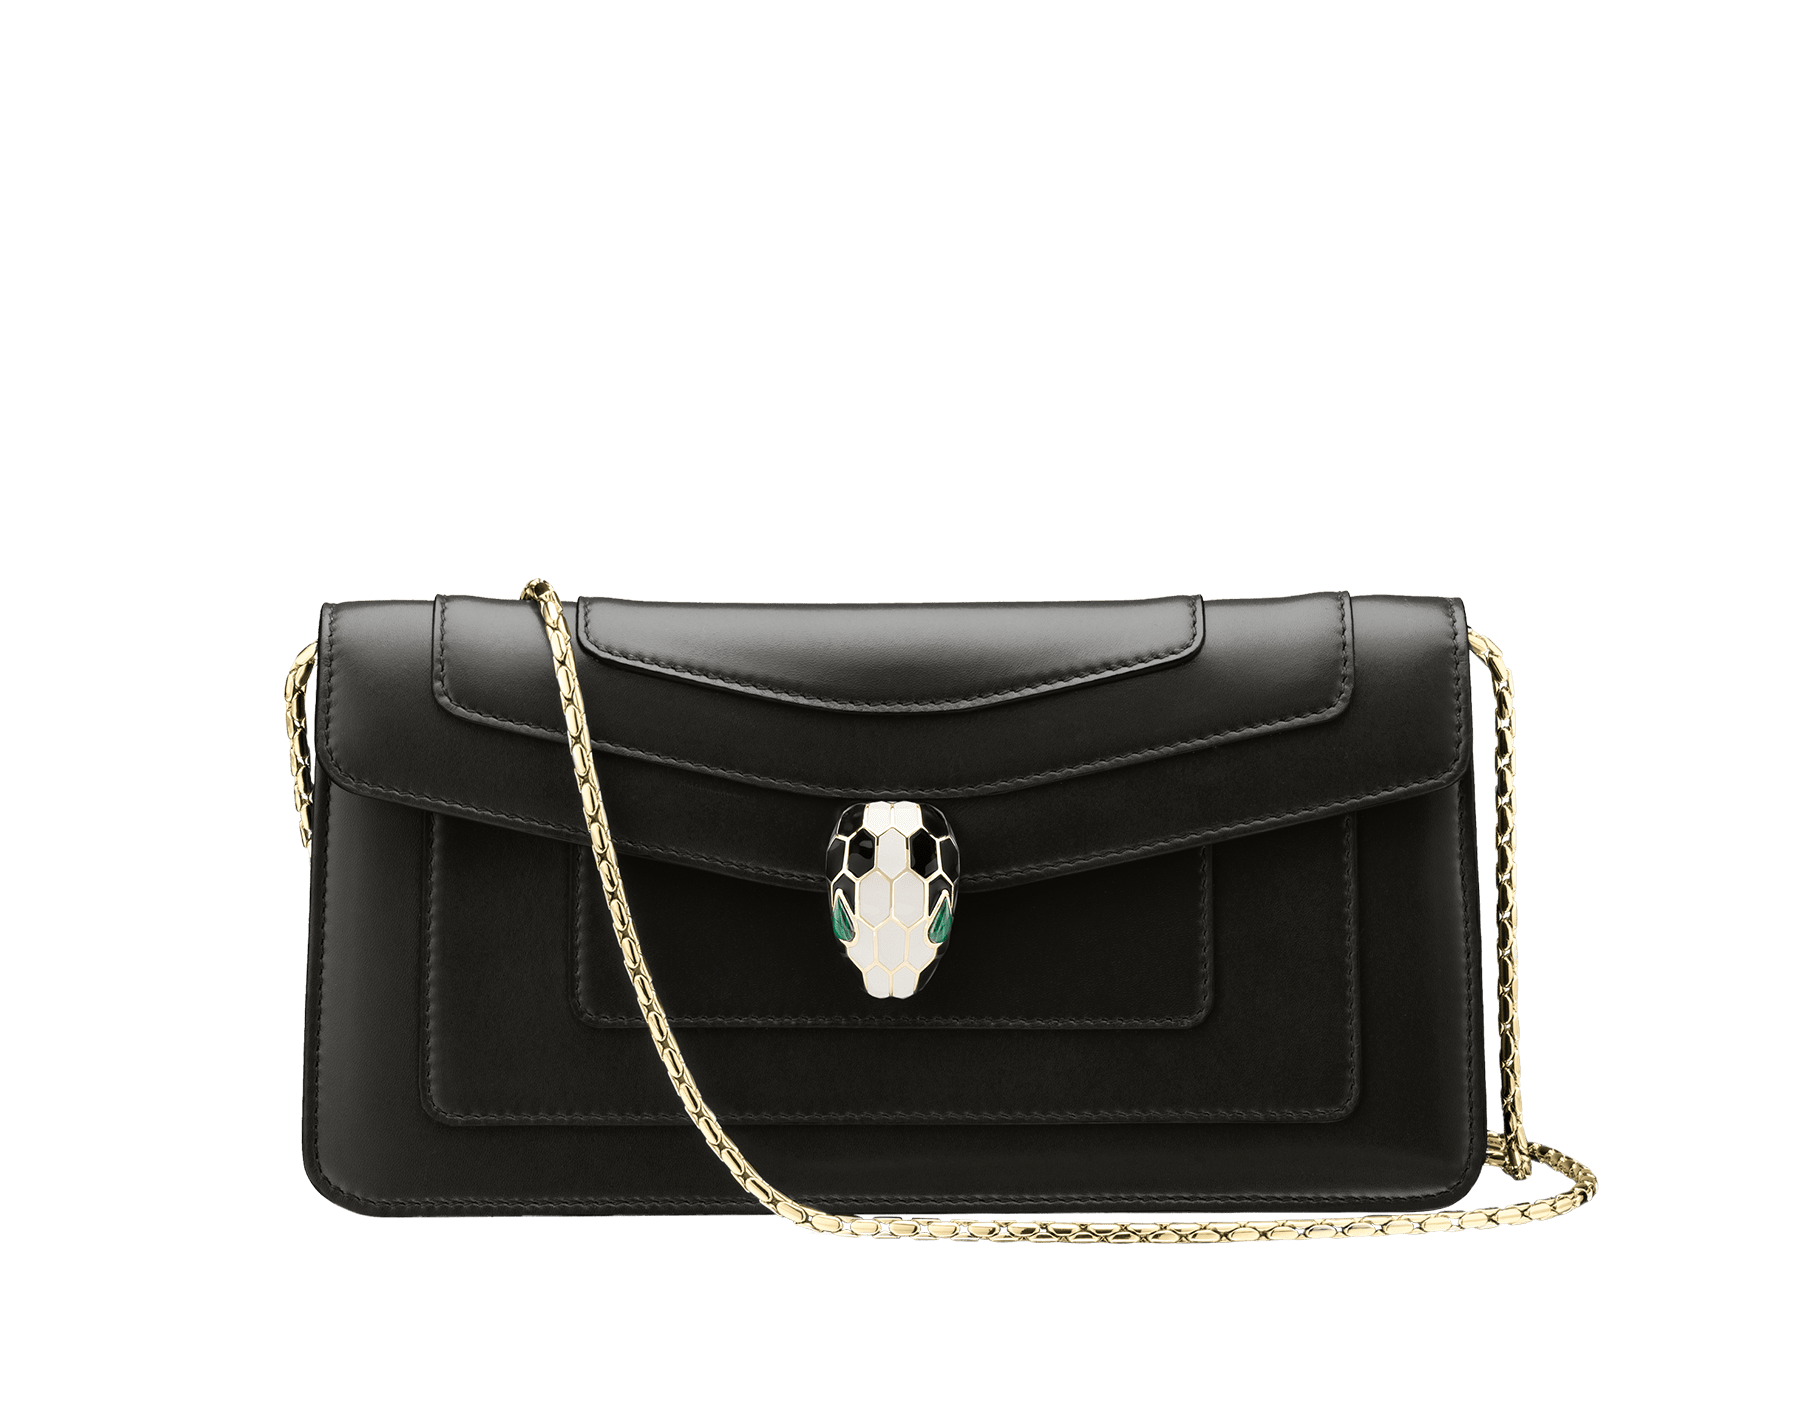 Shoulder bag in black calf leather with brass gold plated Serpenti head closure in black and white enamel with eyes in malachite. One open pocket, one small mirror included and detachable snake chain for handcarry. Also available in other colours. 25x12x3.5cm, 9.8x4.7x1.4 inches 486-CL image 1